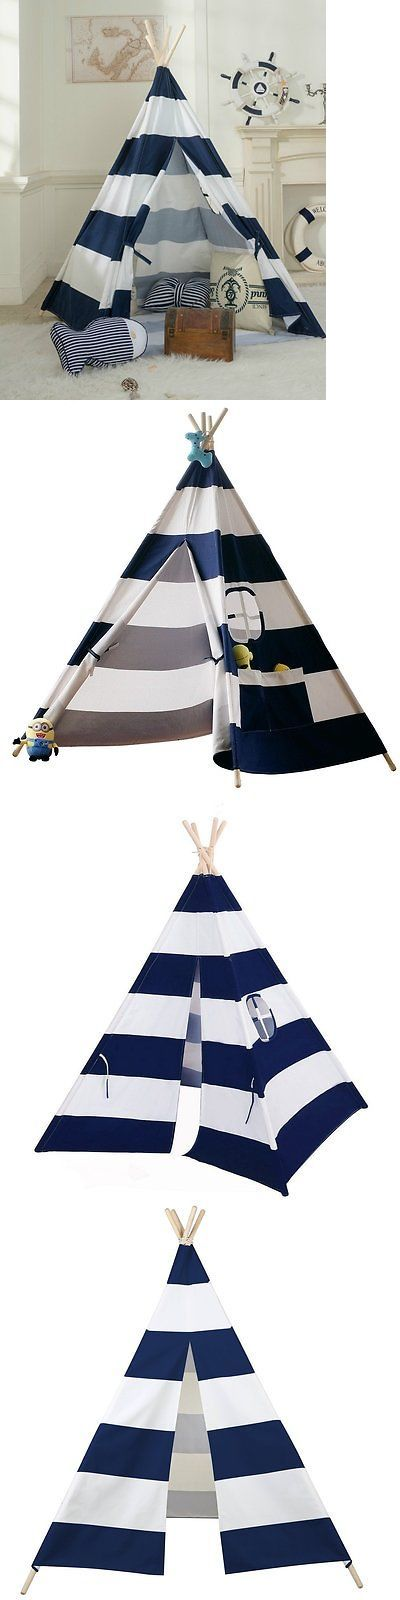 Play Tents 145997: Kids Cotton Canvas Teepee Tent W Carry Case Kids Playhouse Best Gift Navy Stripe -> BUY IT NOW ONLY: $62.99 on eBay!